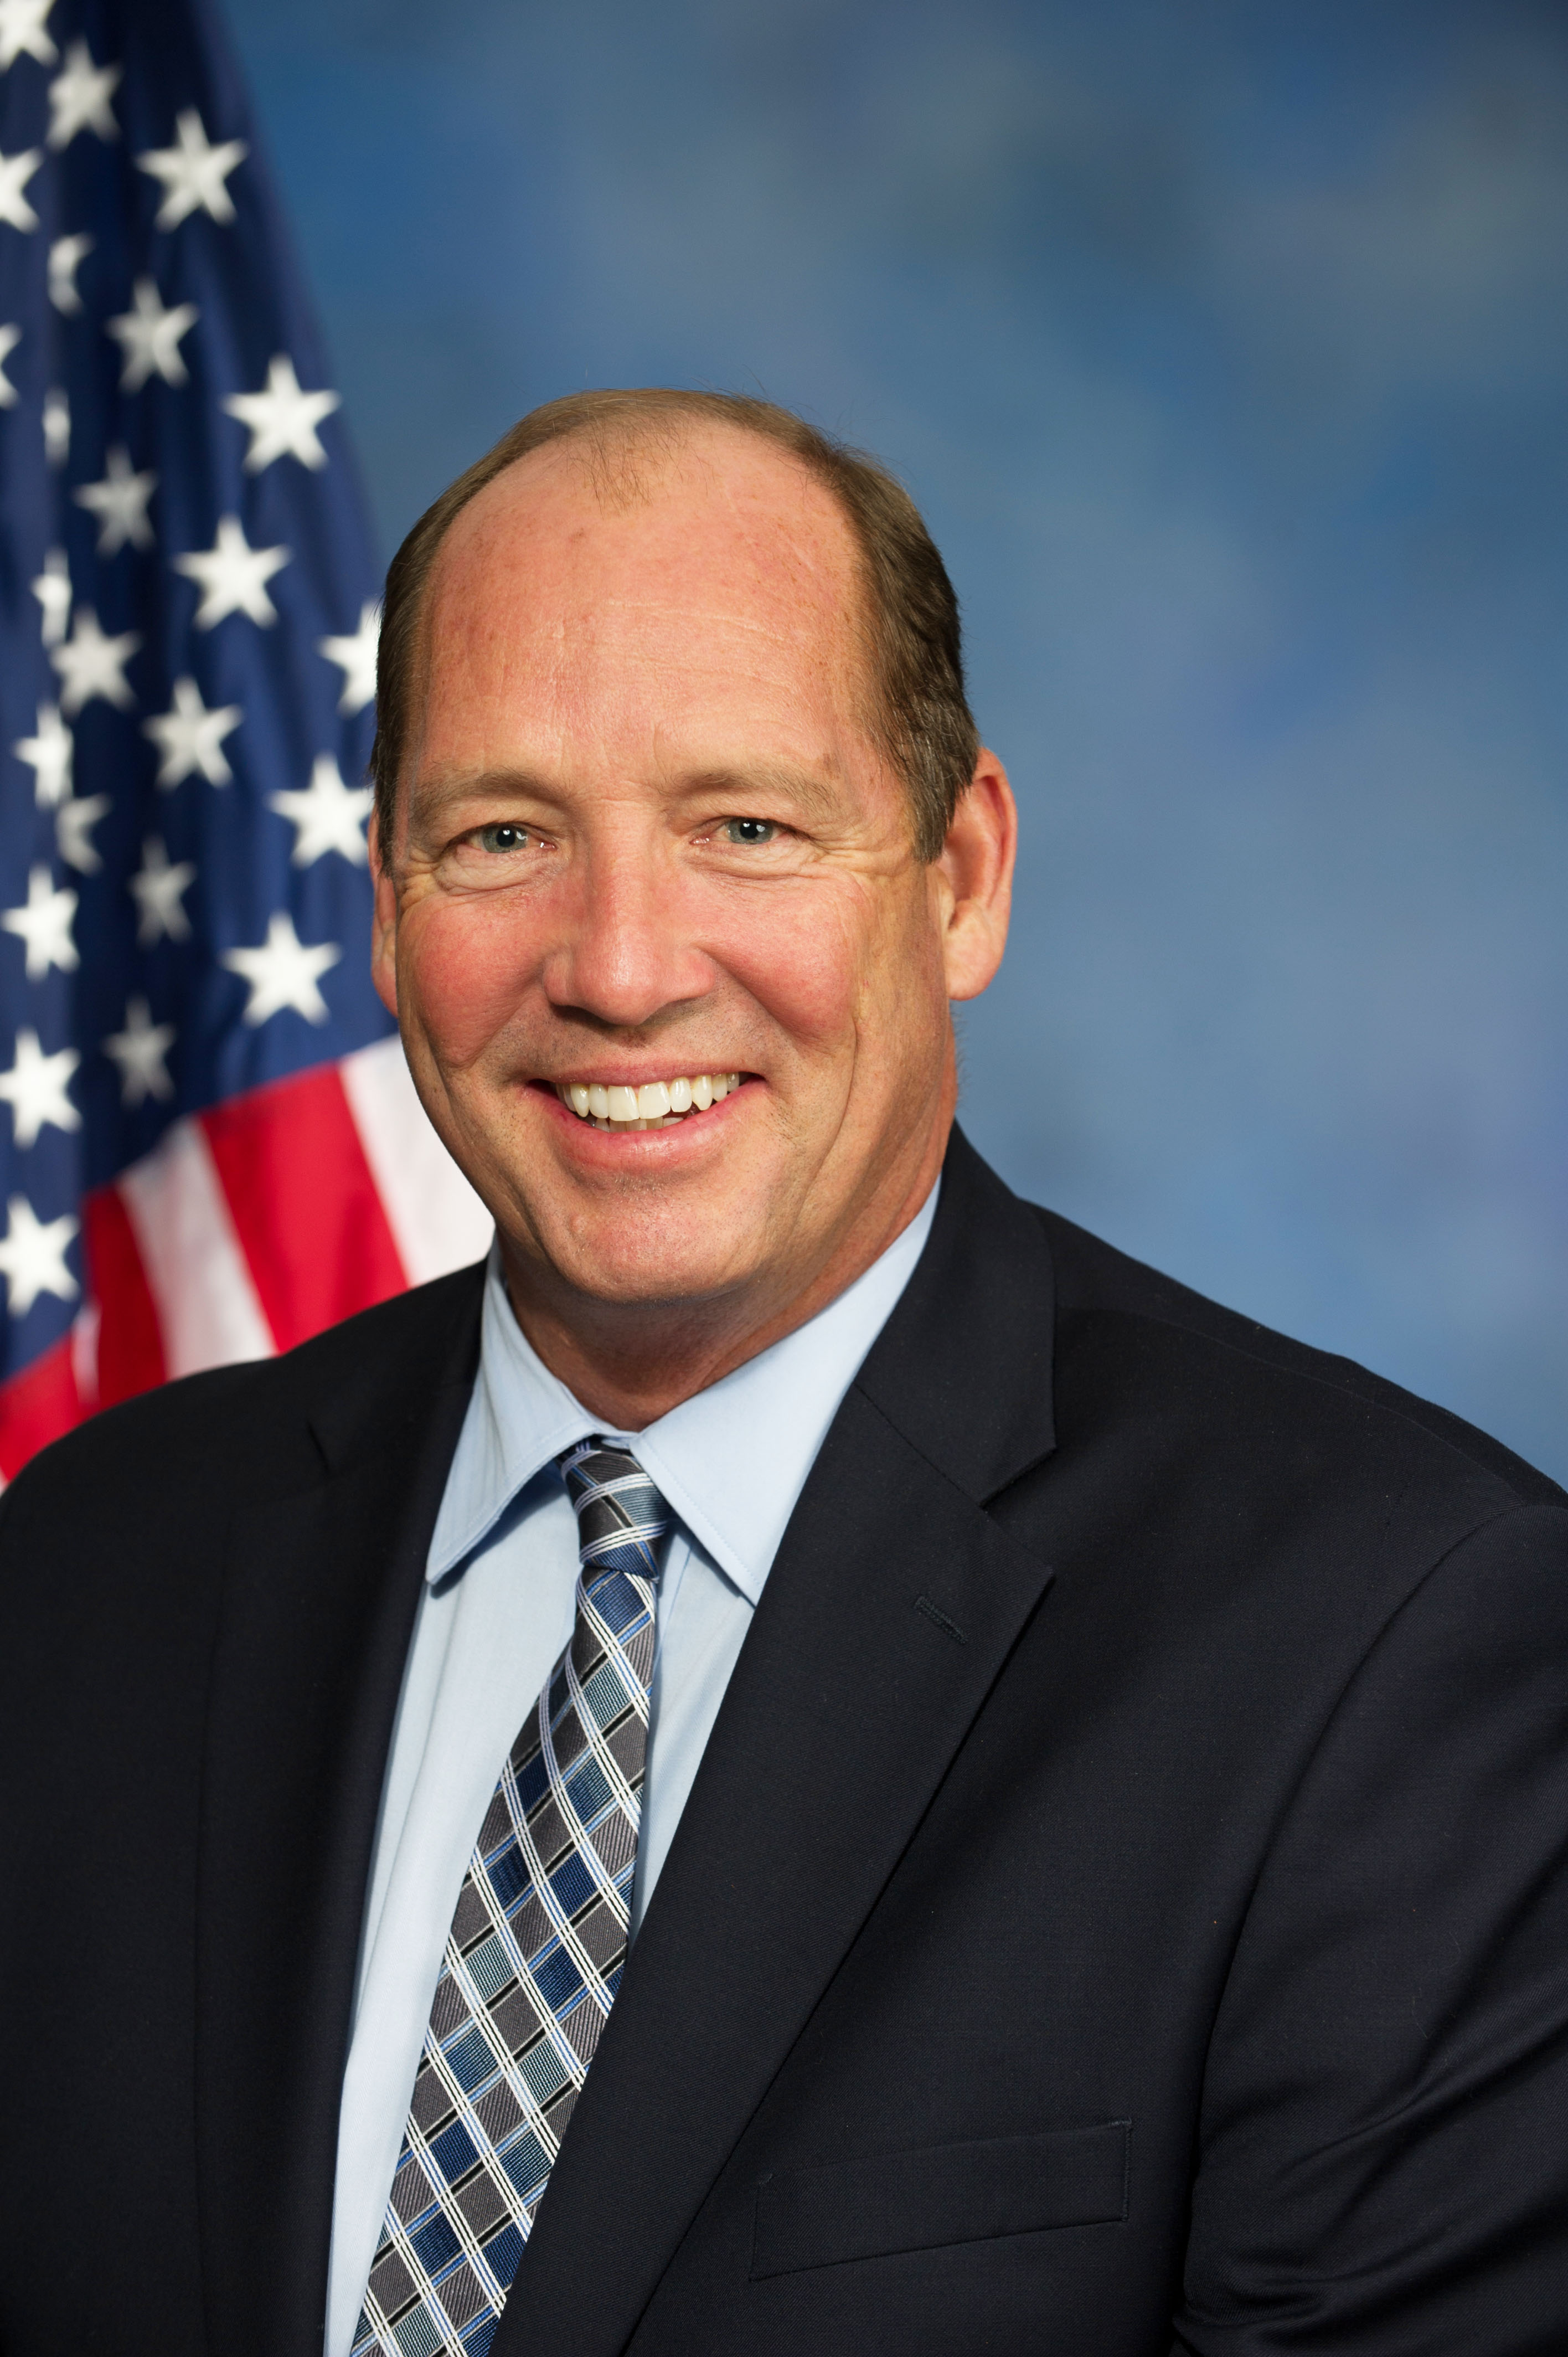 Republican Rep. Ted Yoho of Florida will not seek reelection in 2020